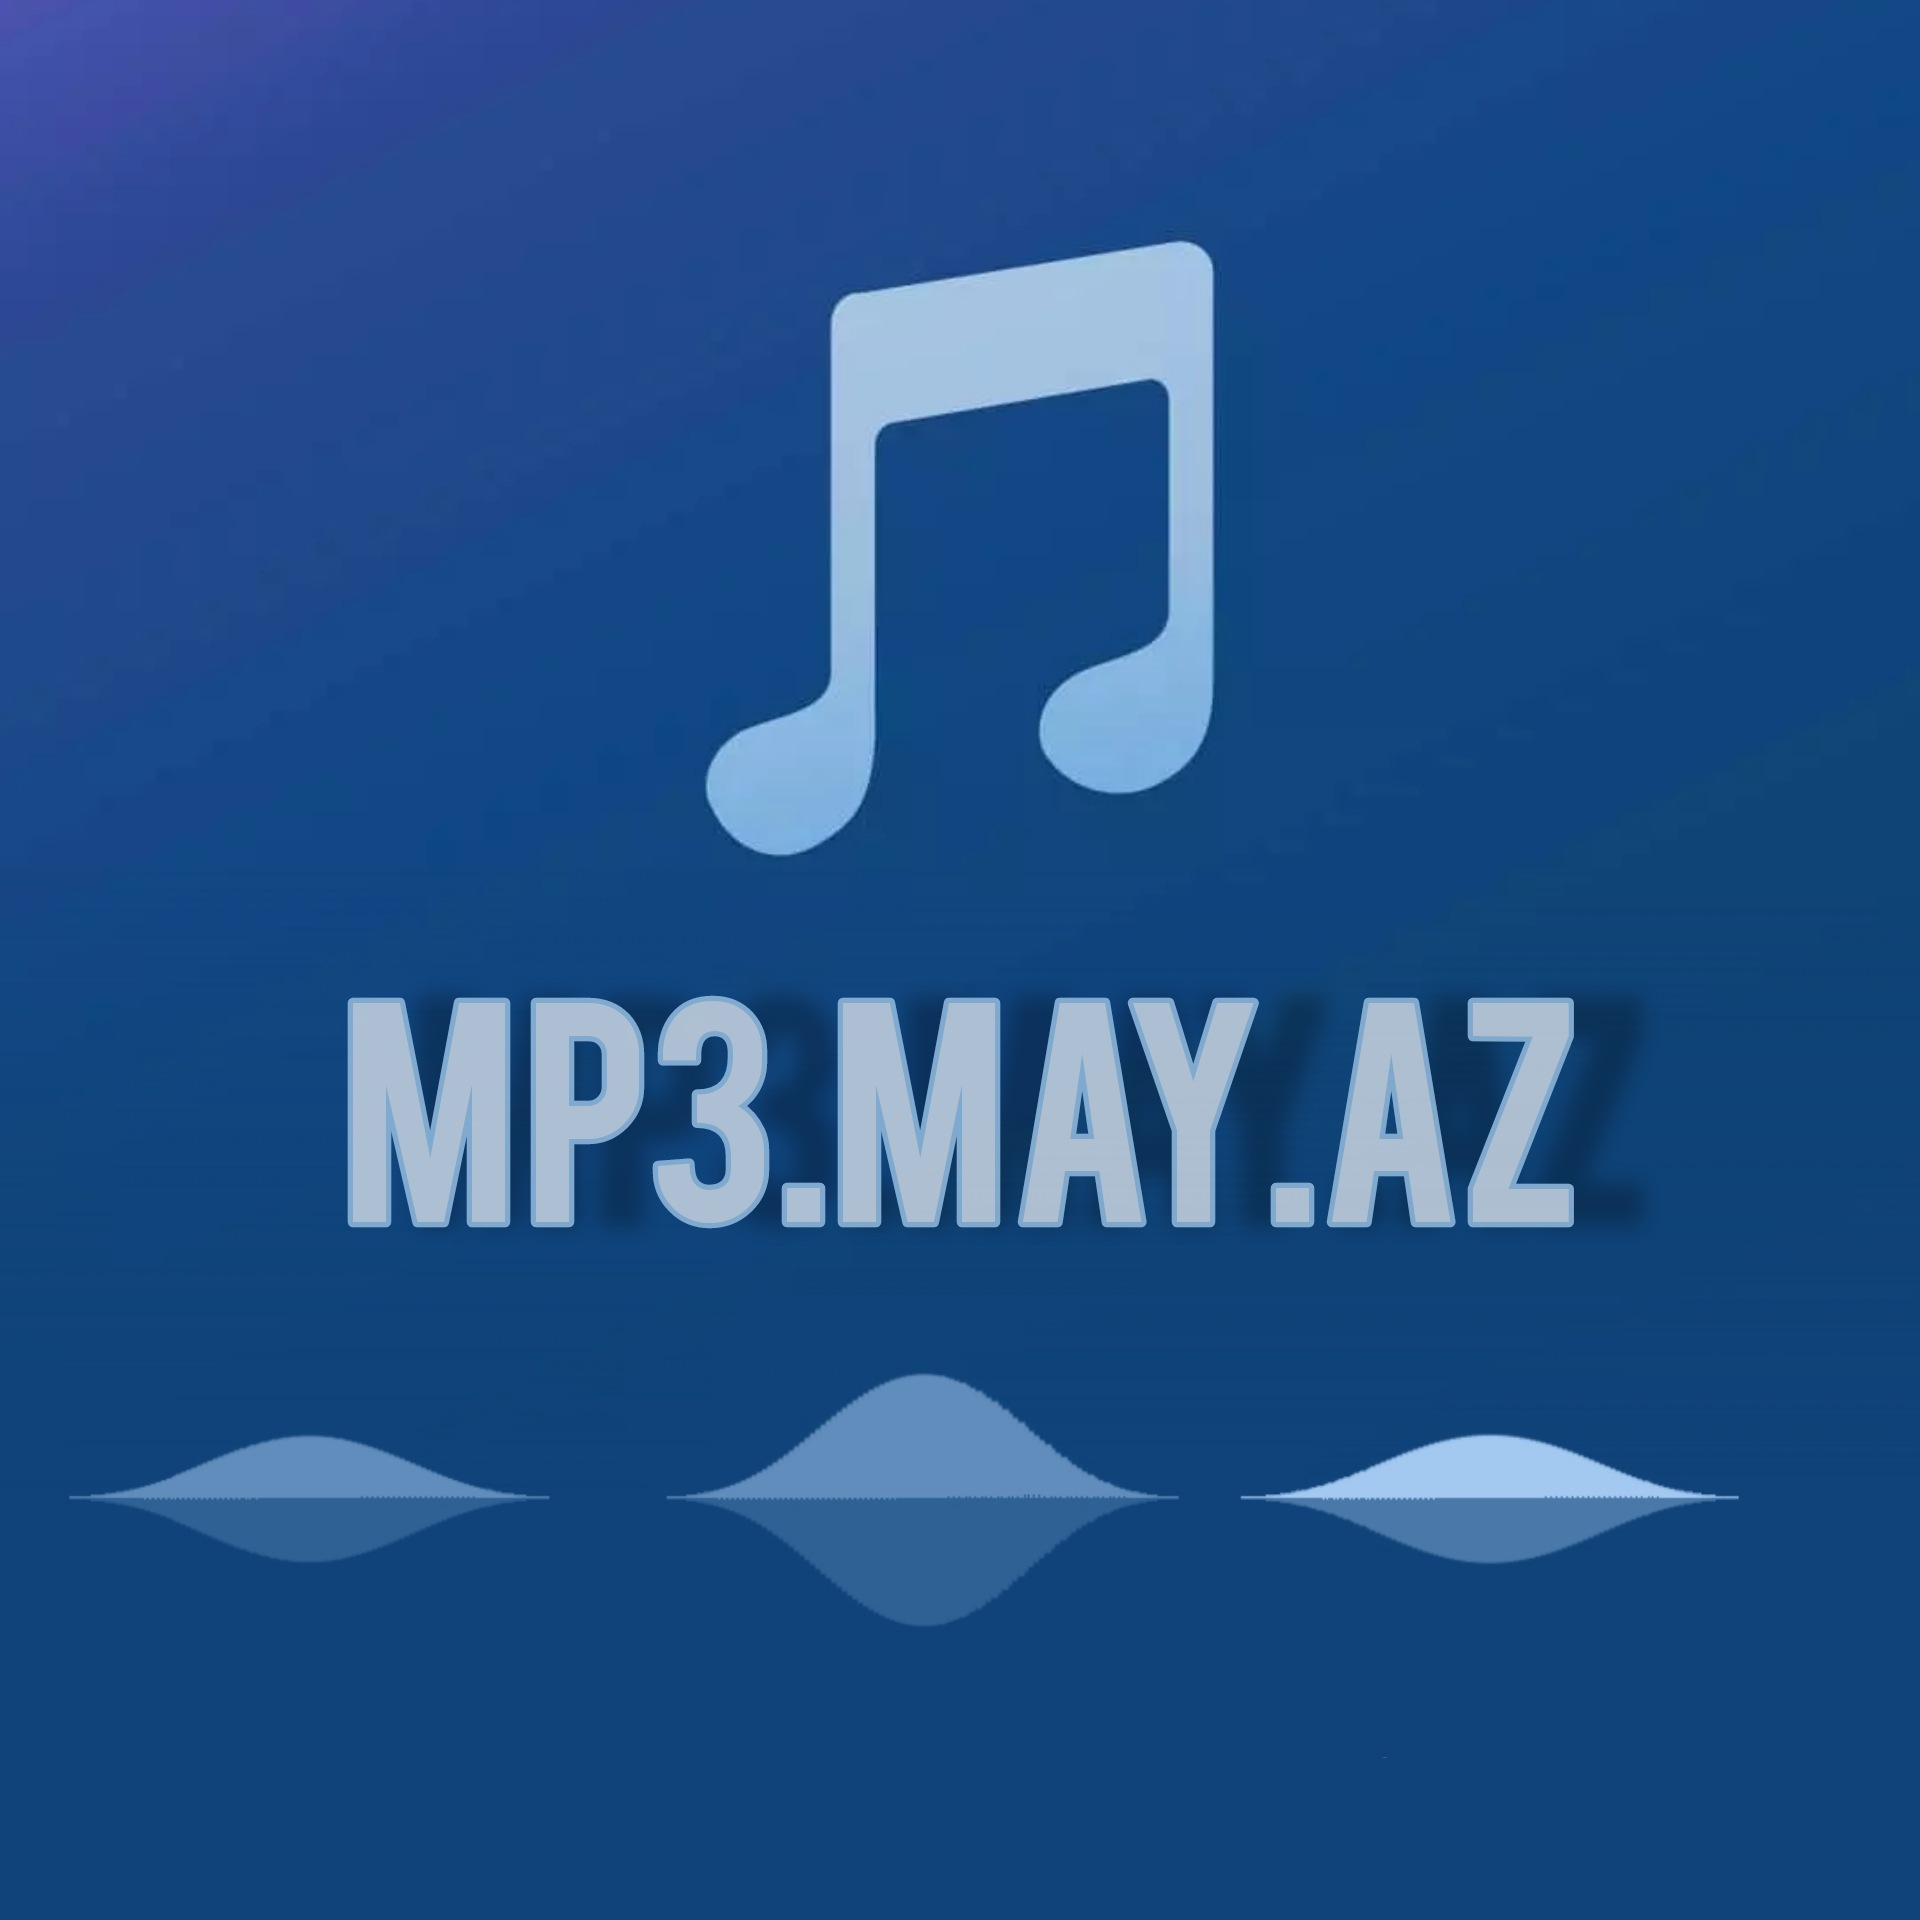 mp3.may.az